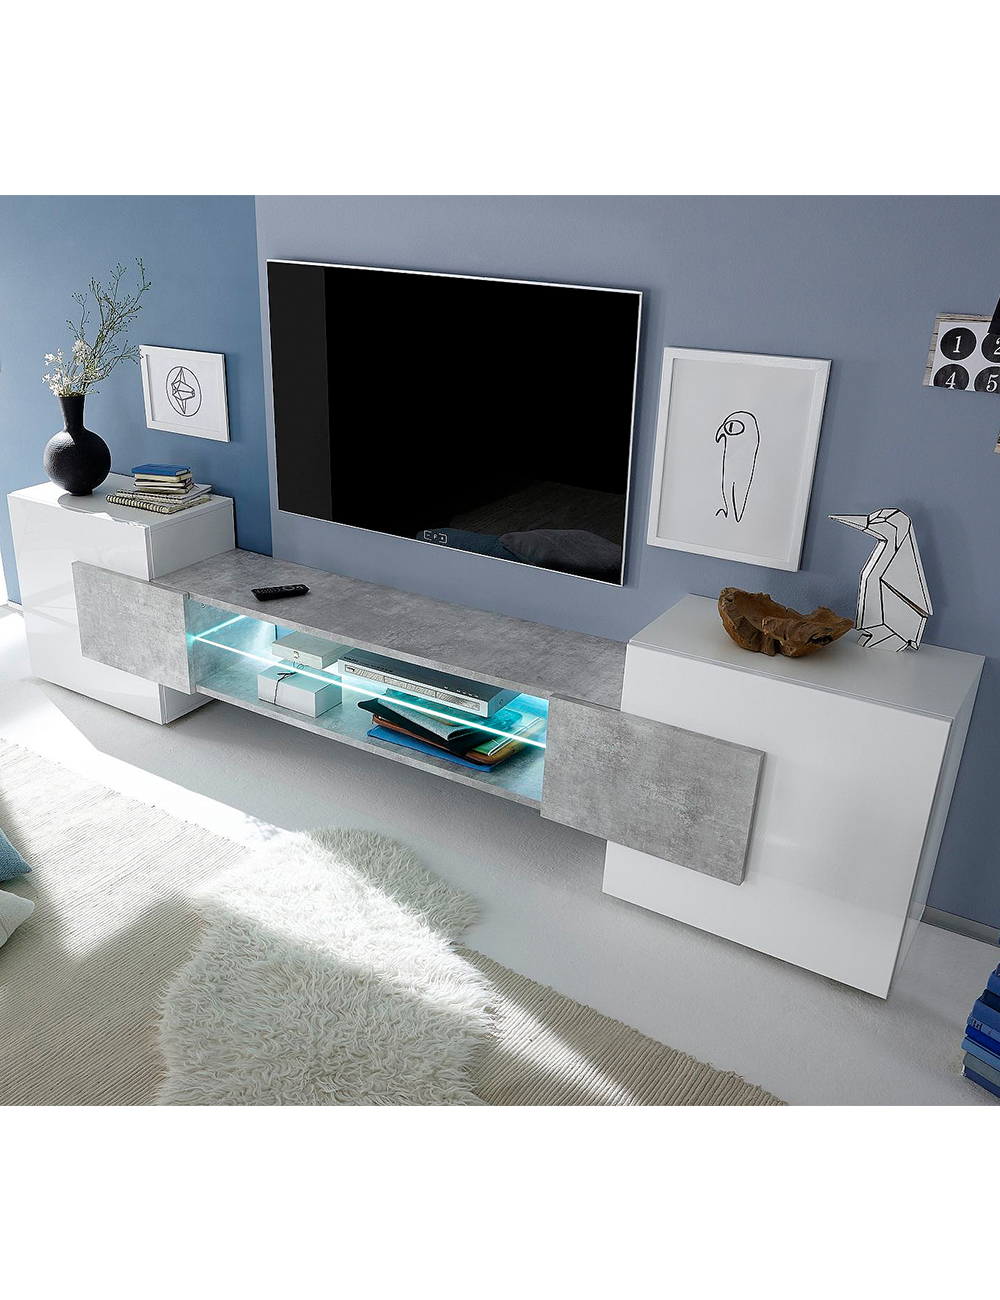 tv m bel bahamas weiss beton. Black Bedroom Furniture Sets. Home Design Ideas